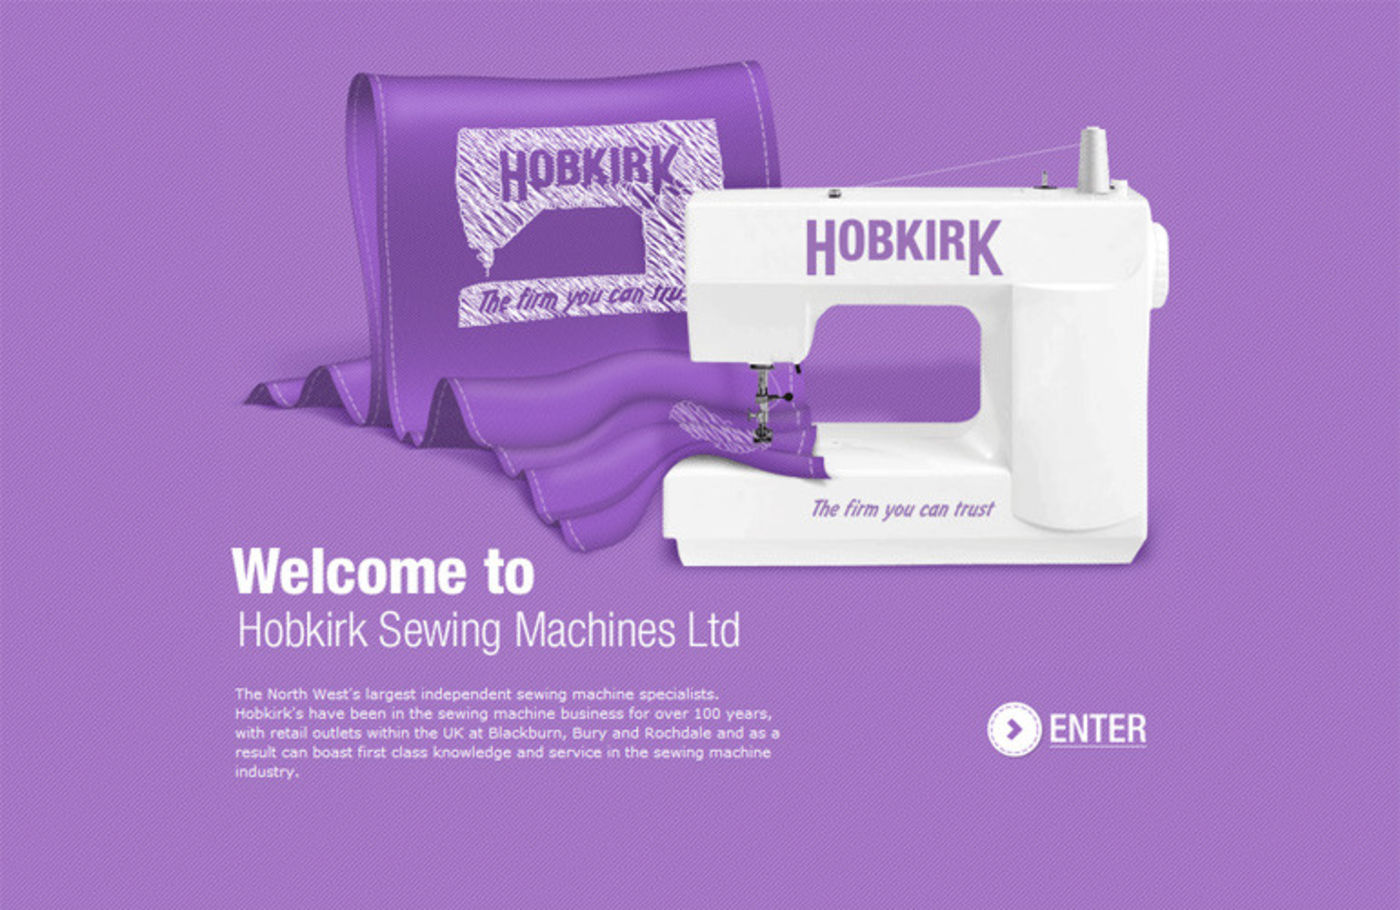 Sewing Machines From Hobkirk Awesome Hobkirk Sewing Machines